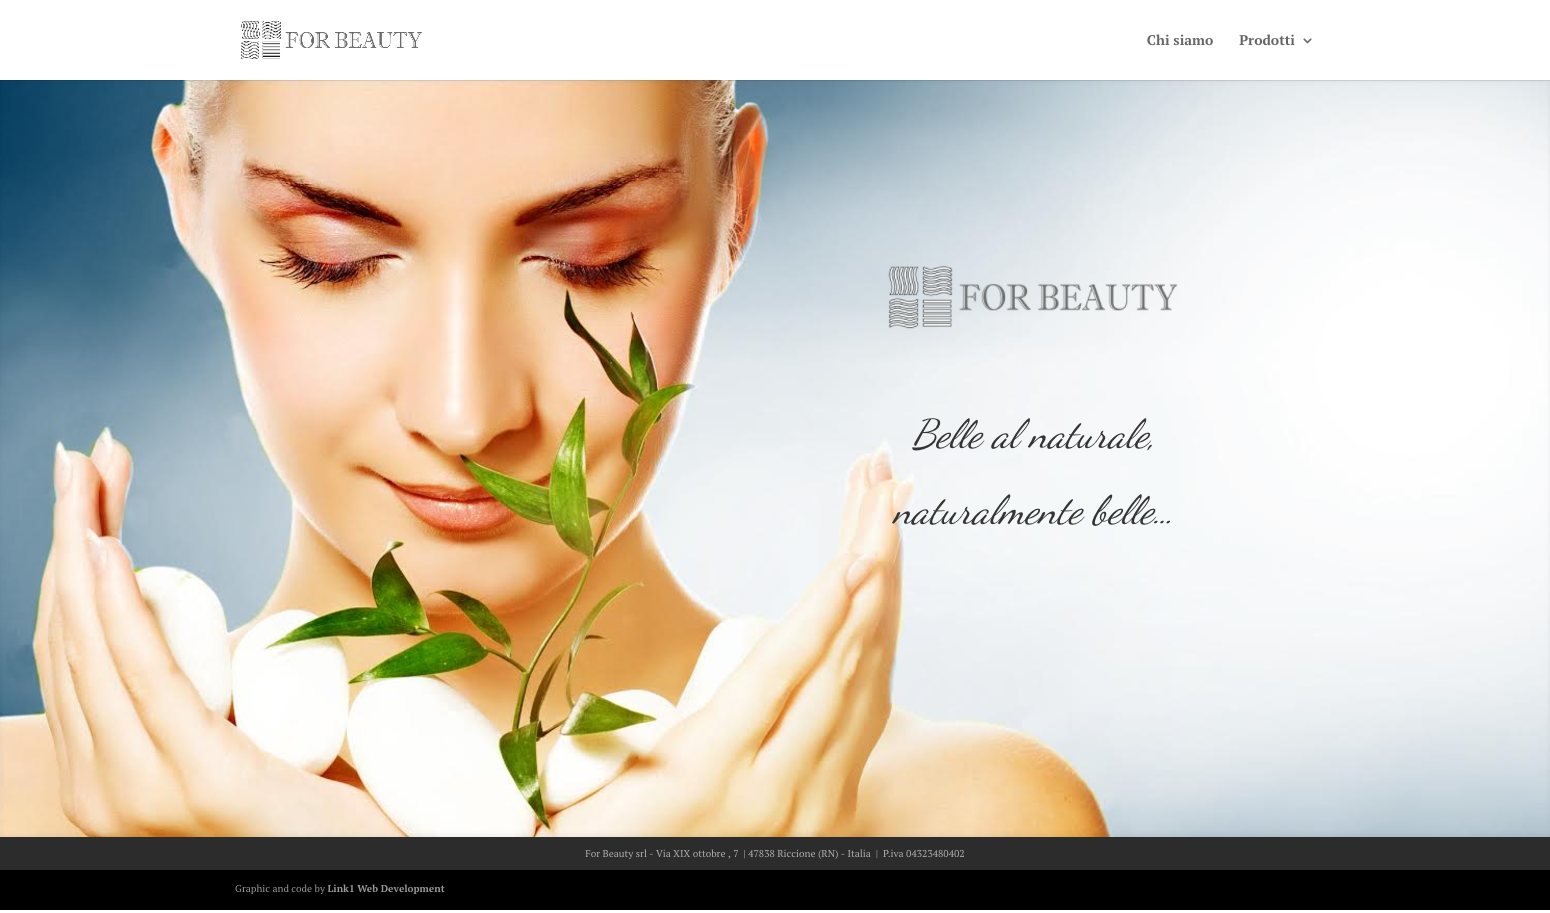 For Beauty - www.forbeauty.it